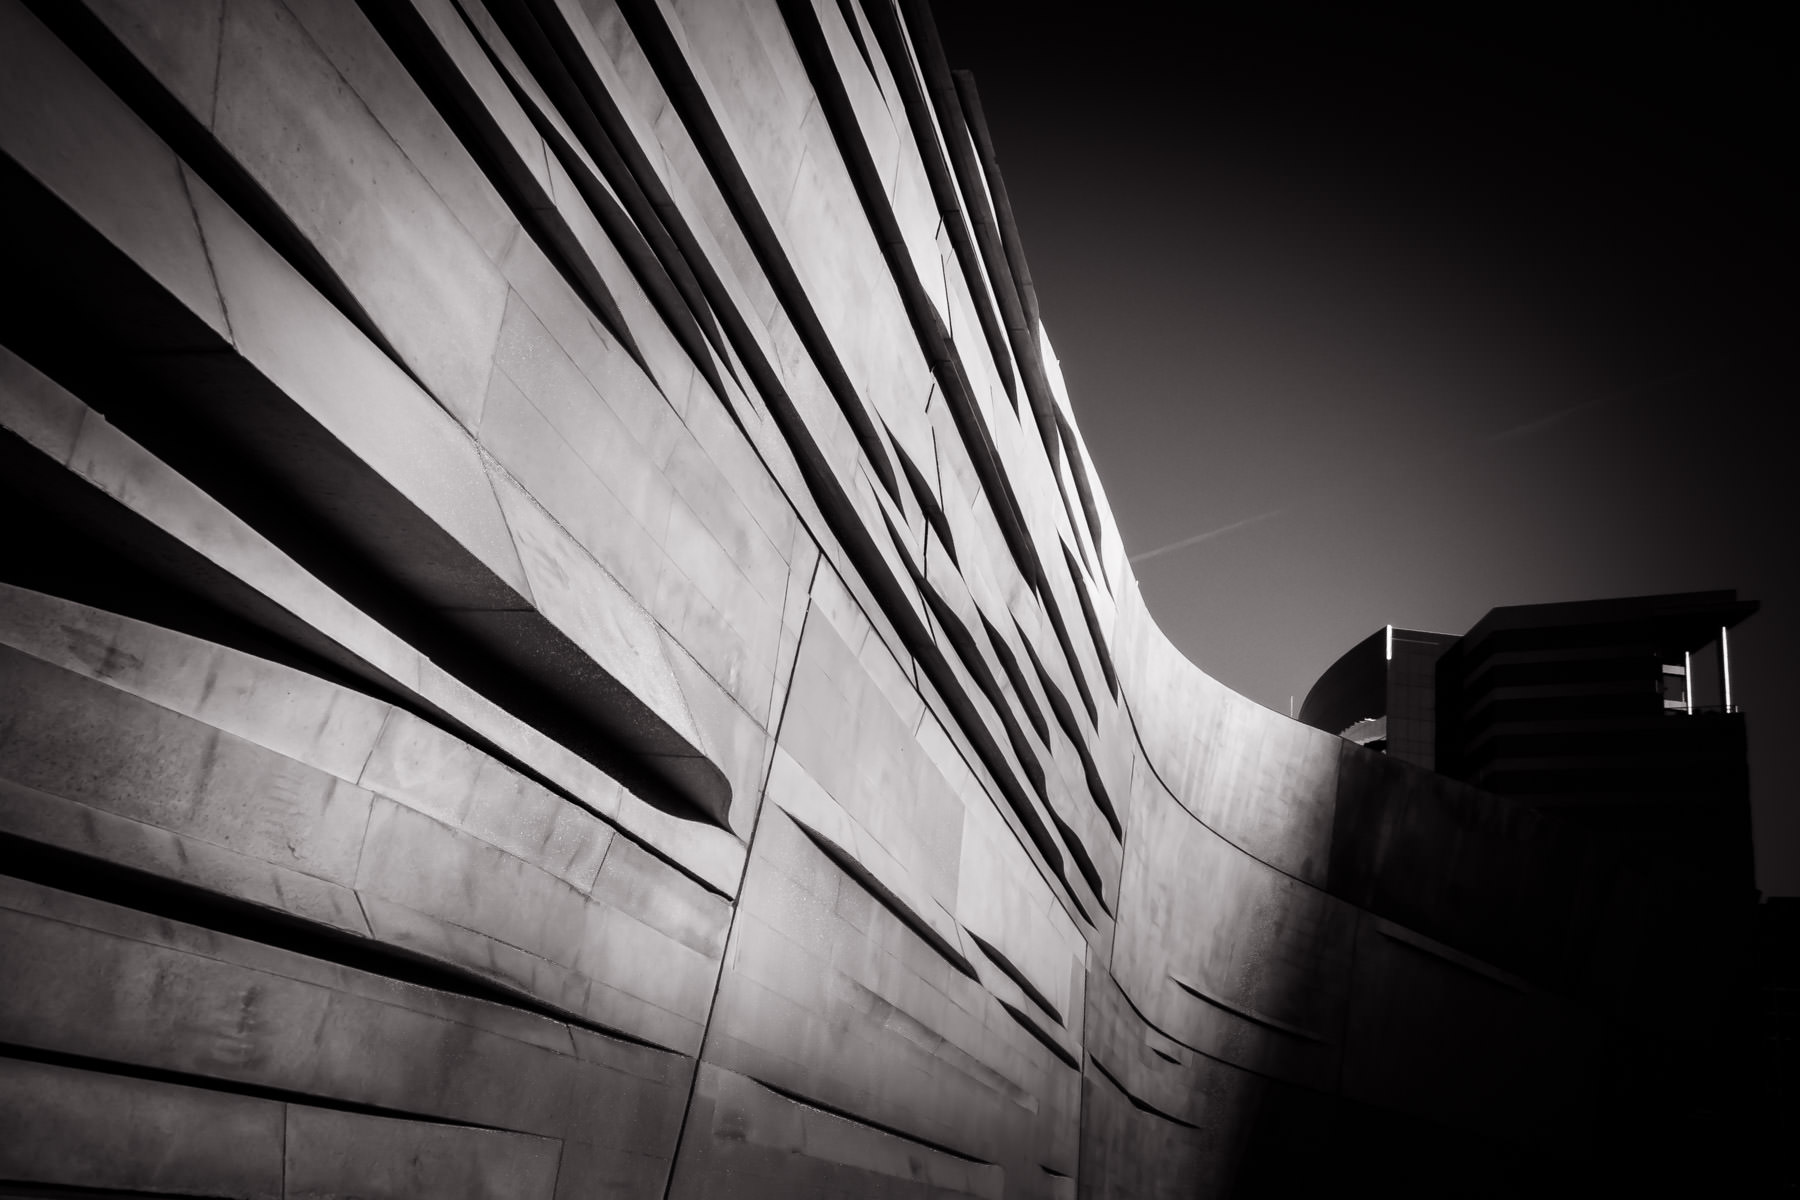 Exterior architectural detail of Dallas' Perot Museum of Nature and Science.